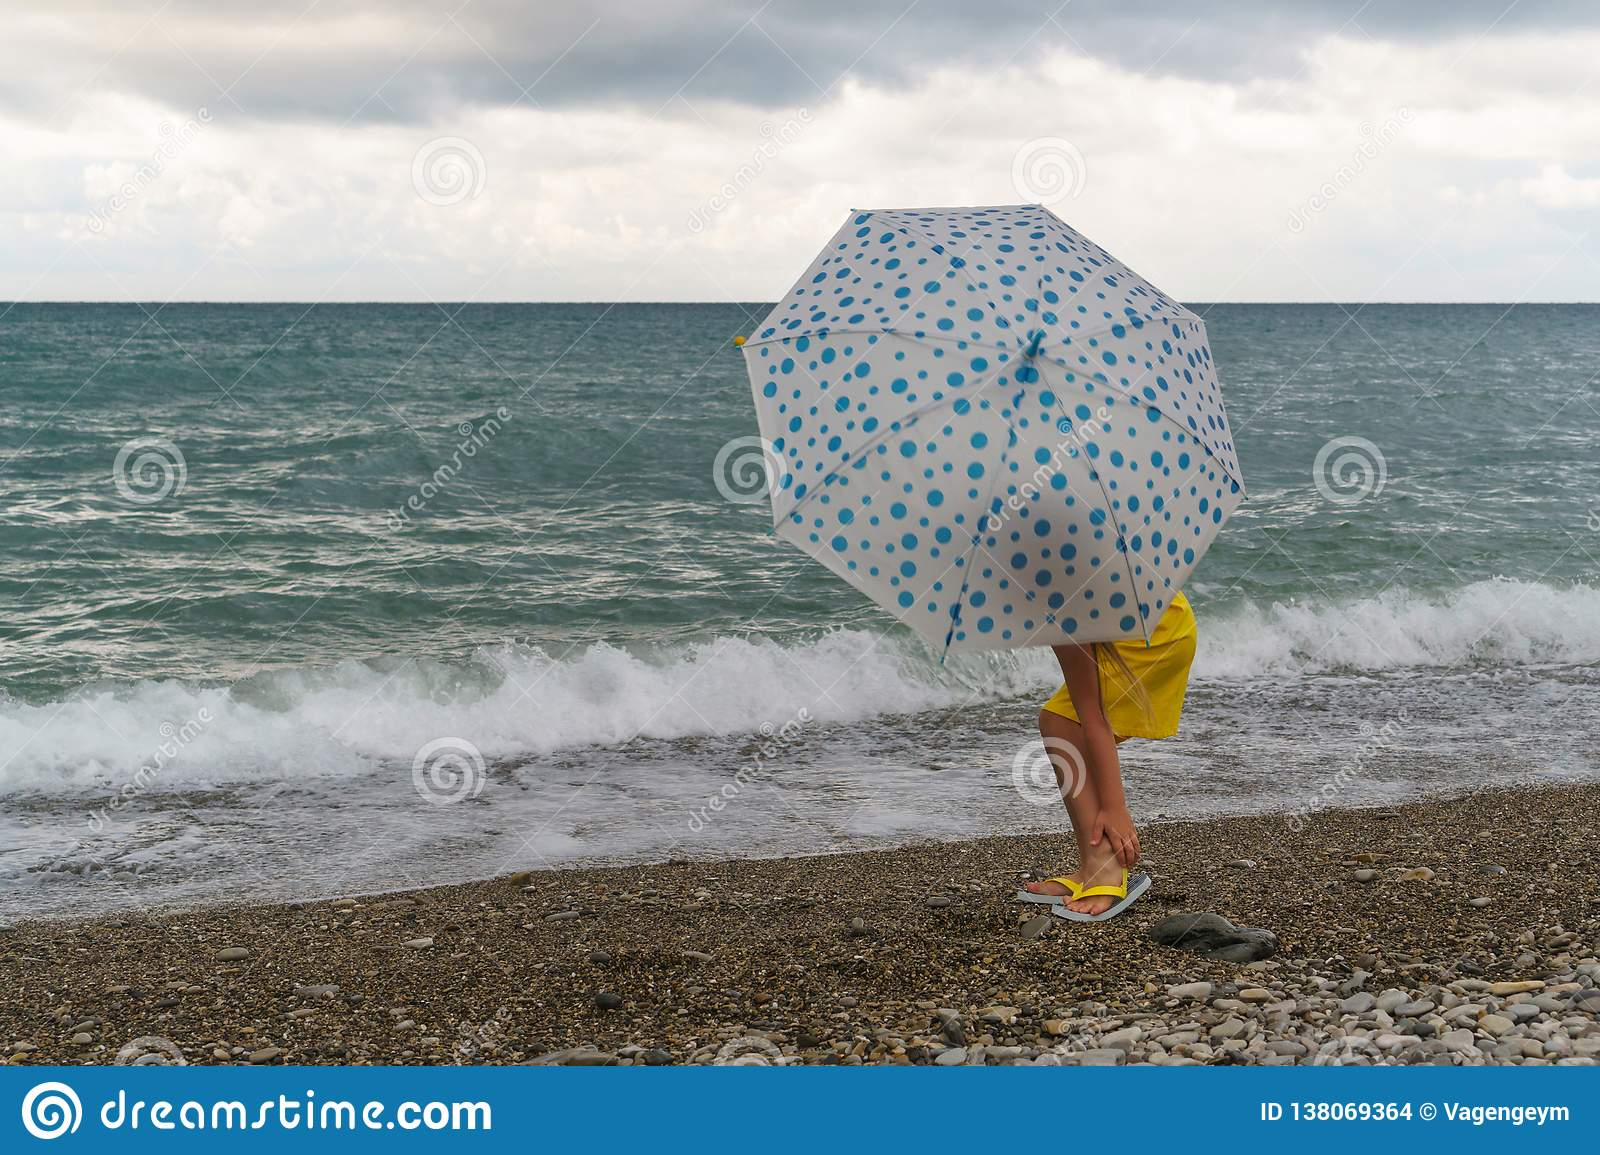 Little girl with umbrella on beach in bad weather